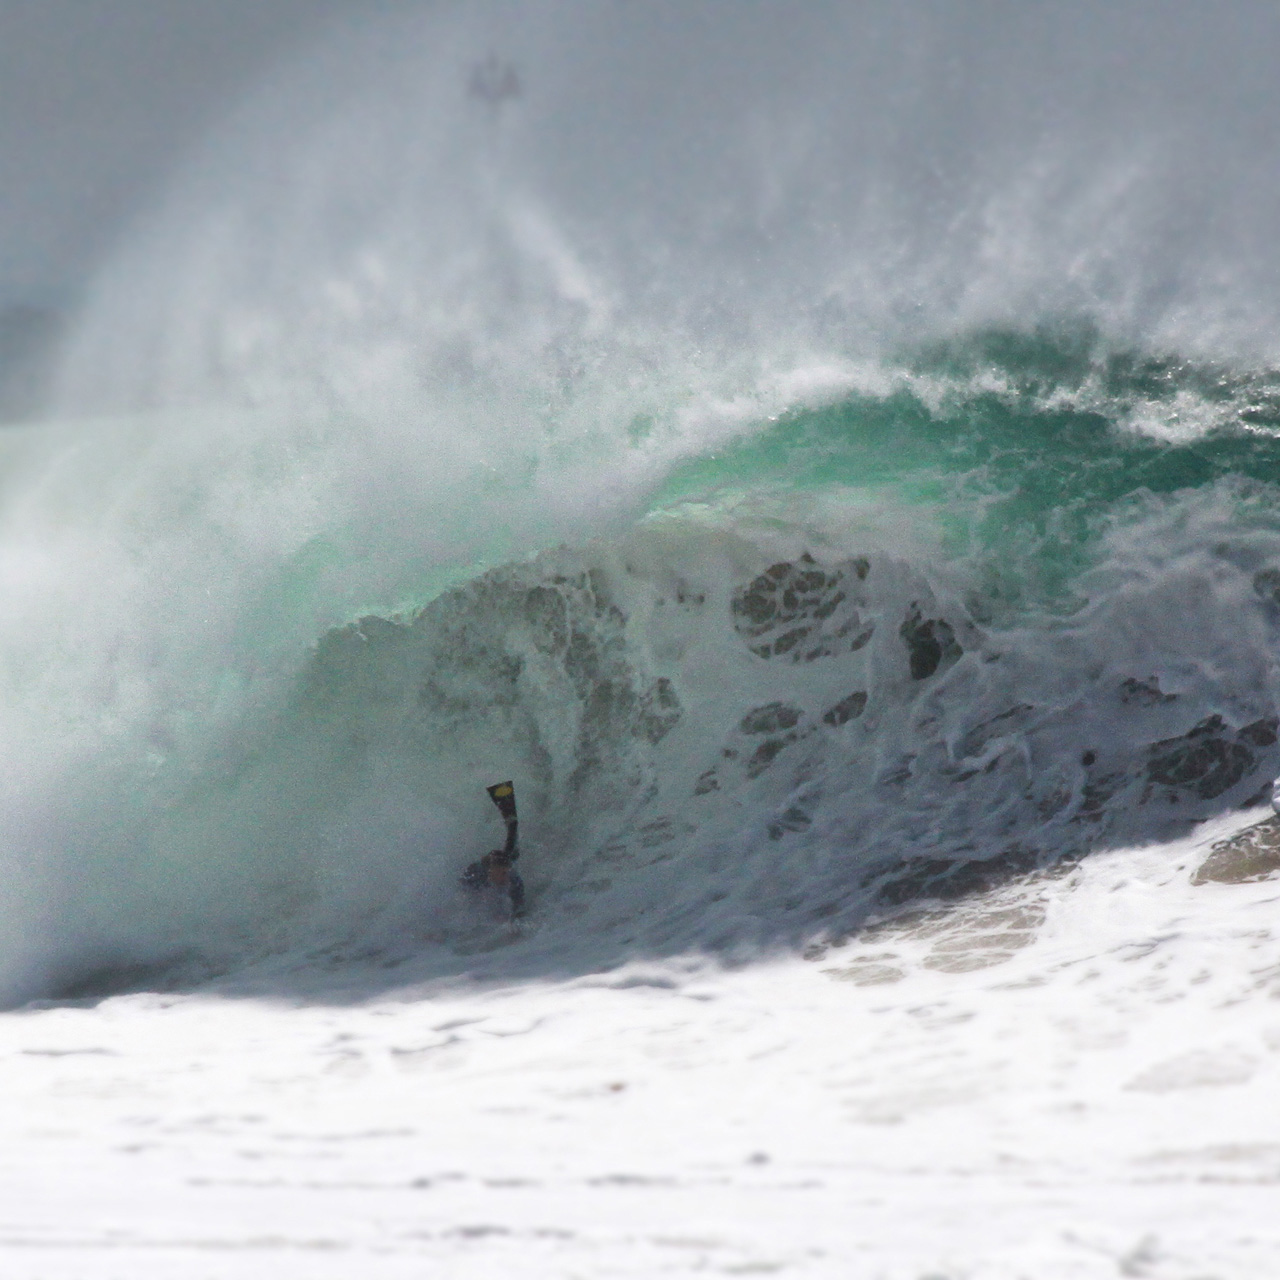 Bodysurfer in the Sacred Cave of Moving Light | The Wedge, Newport Beach, August 27th 2014